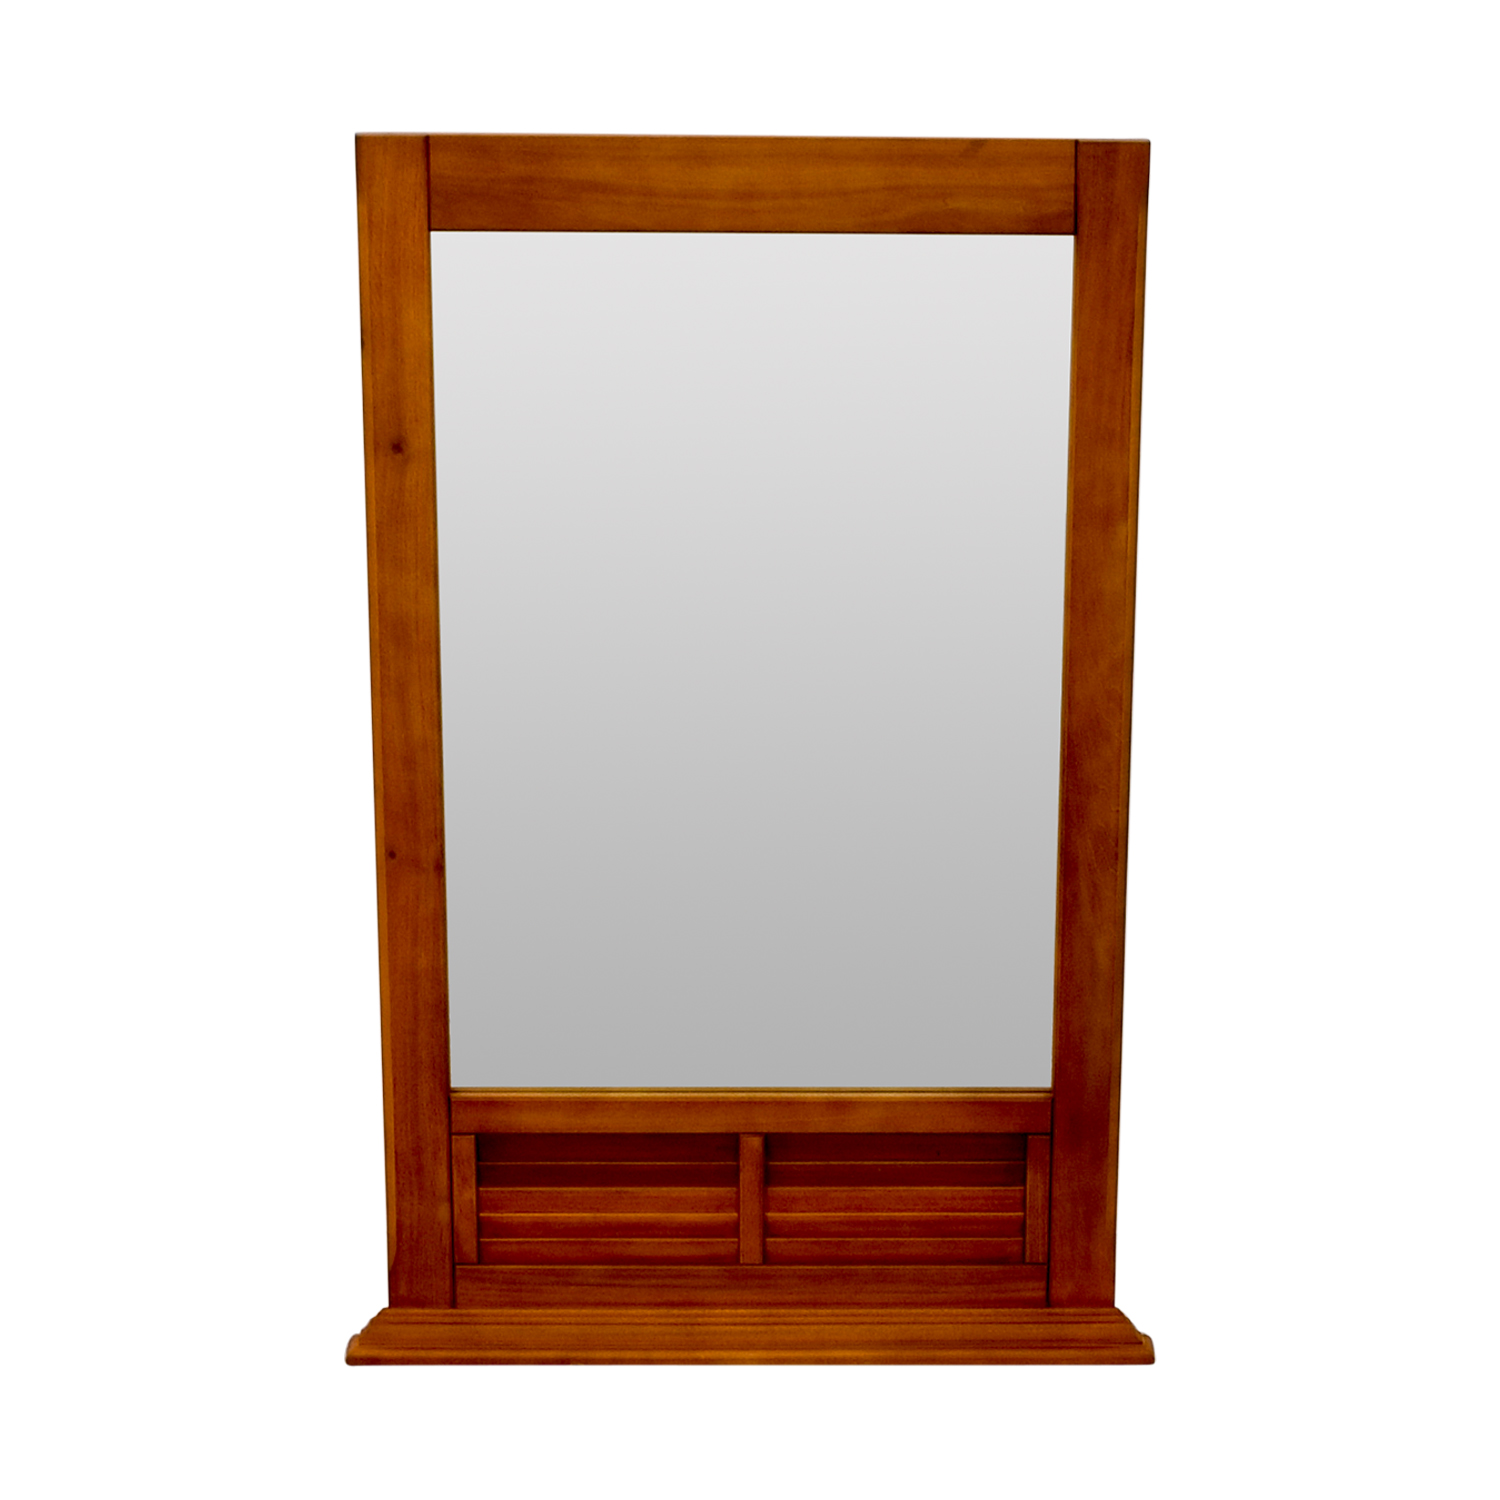 Natural Wood Window Pane Mirror used